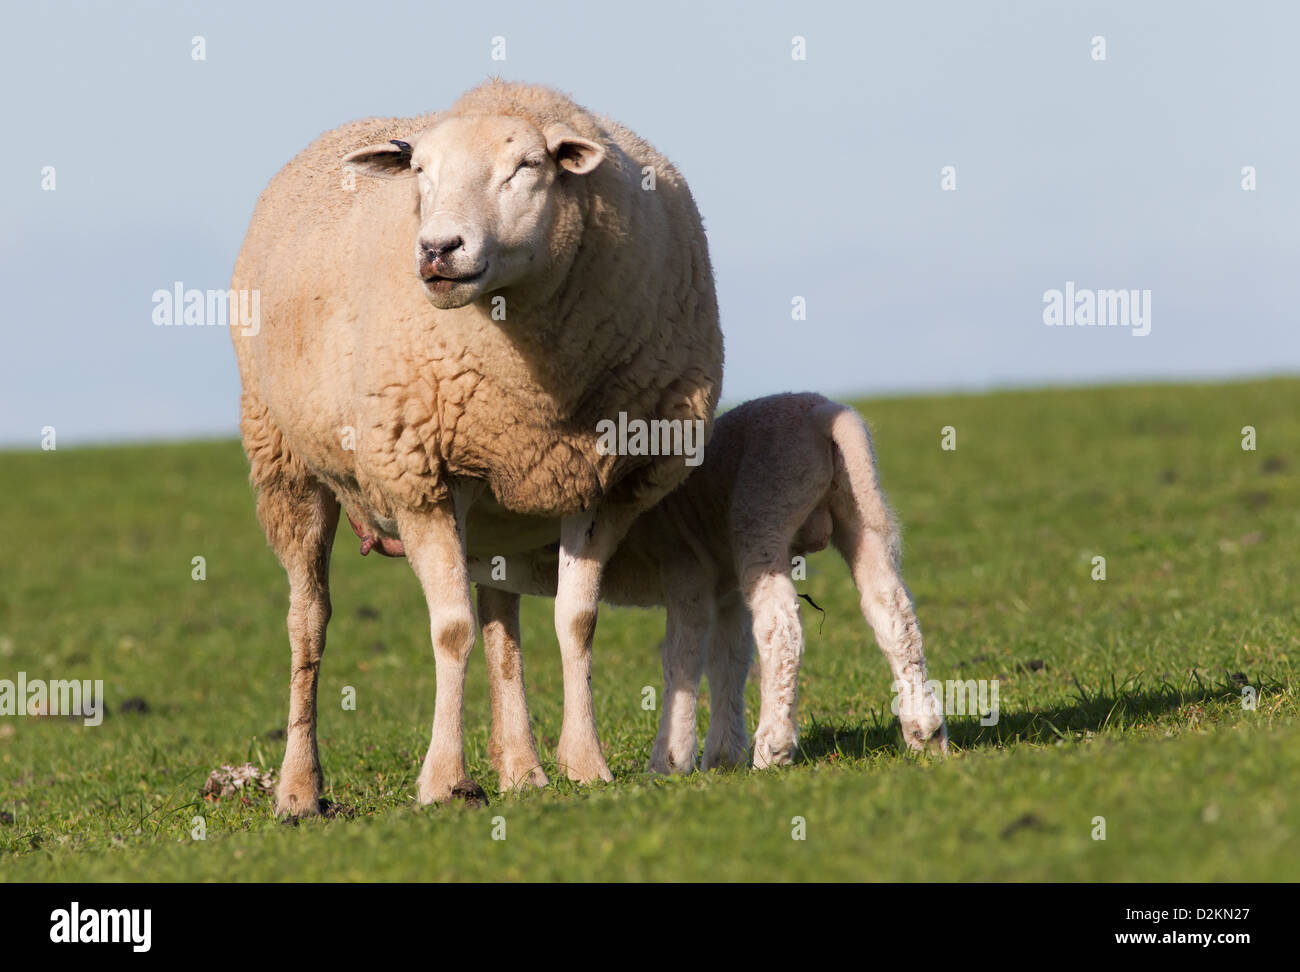 Mother sheep and her baby lamb - Stock Image